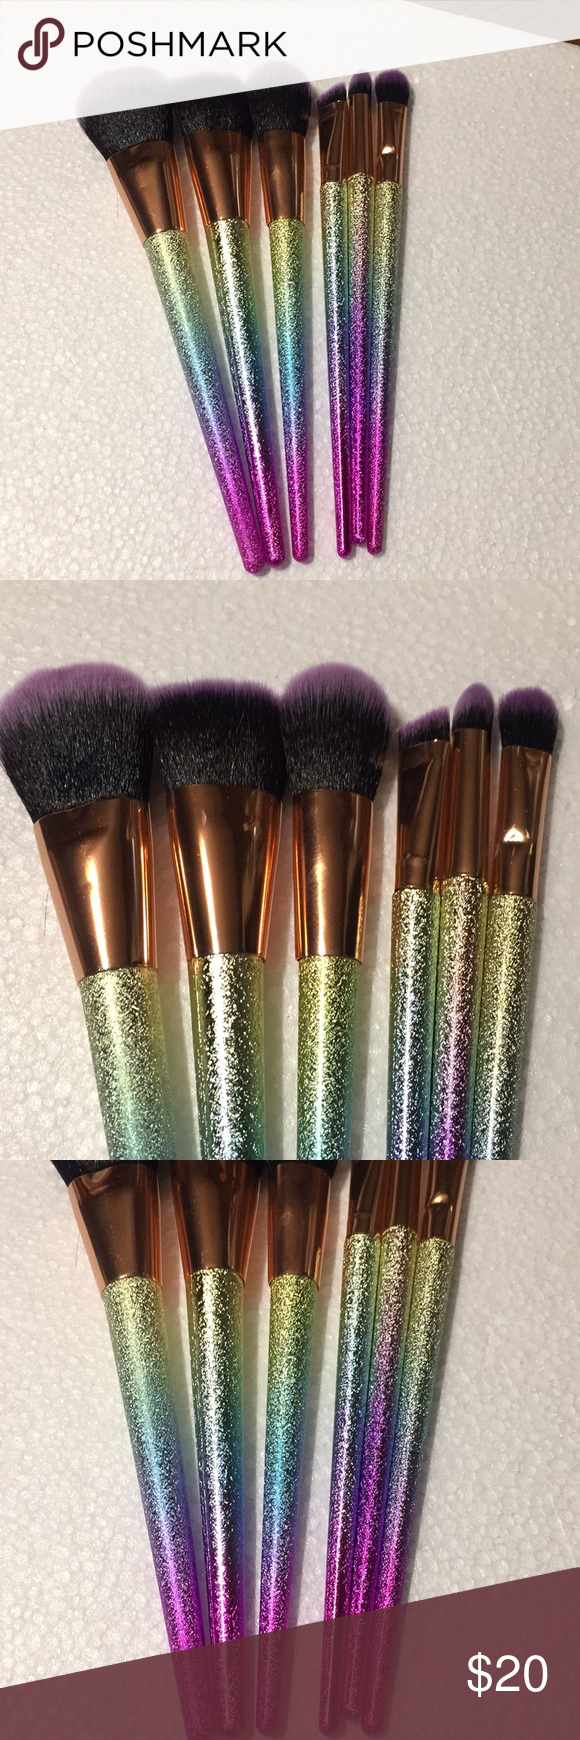 RAINBOW MAKEUP BRUSHES SET OF 6 NWT PURPLE TIPPED RAINBOW